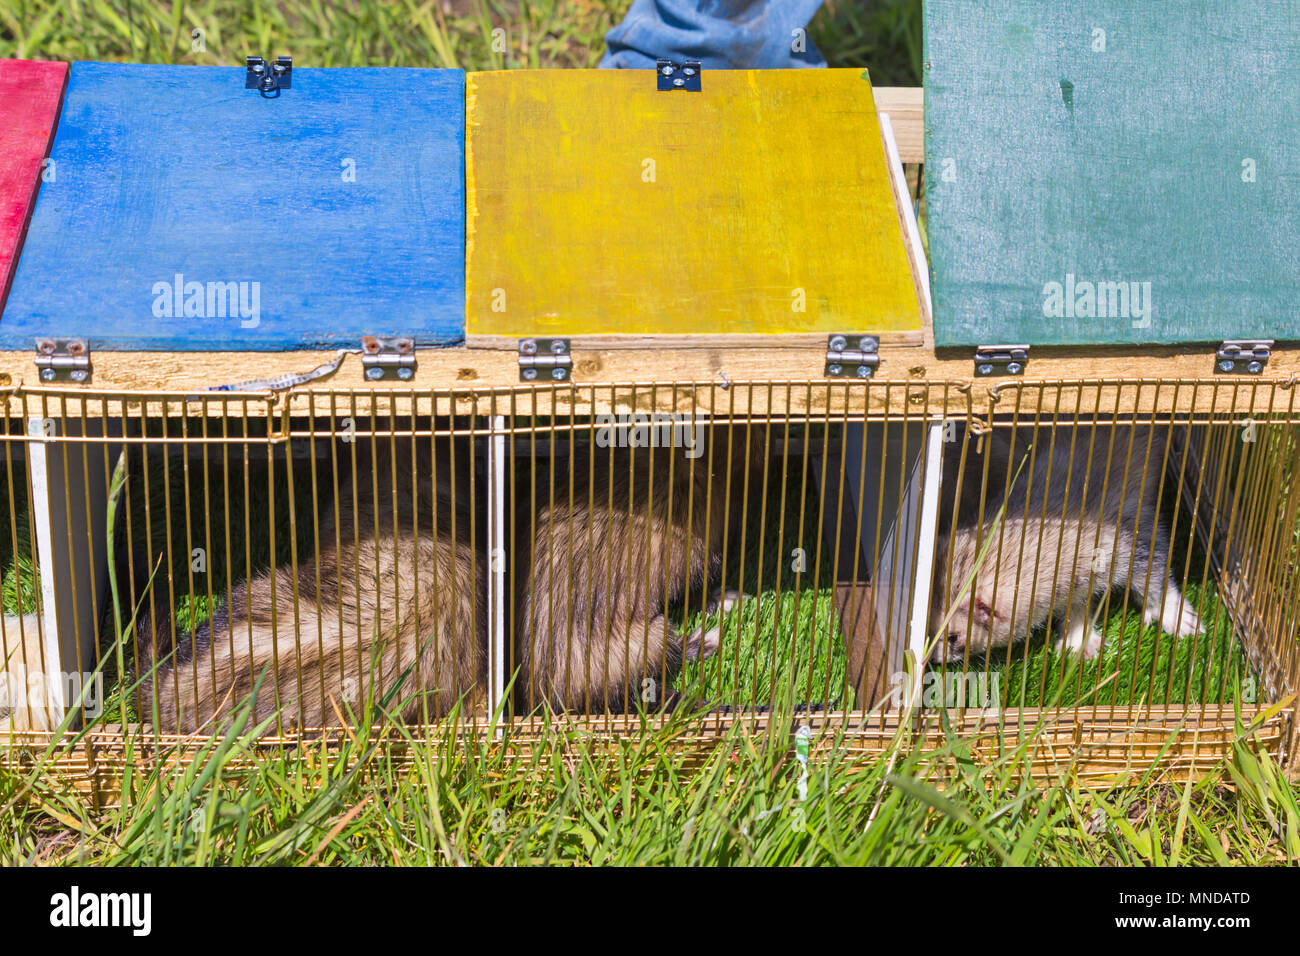 Ferrets in cages ready for ferret racing at Hampshire Game